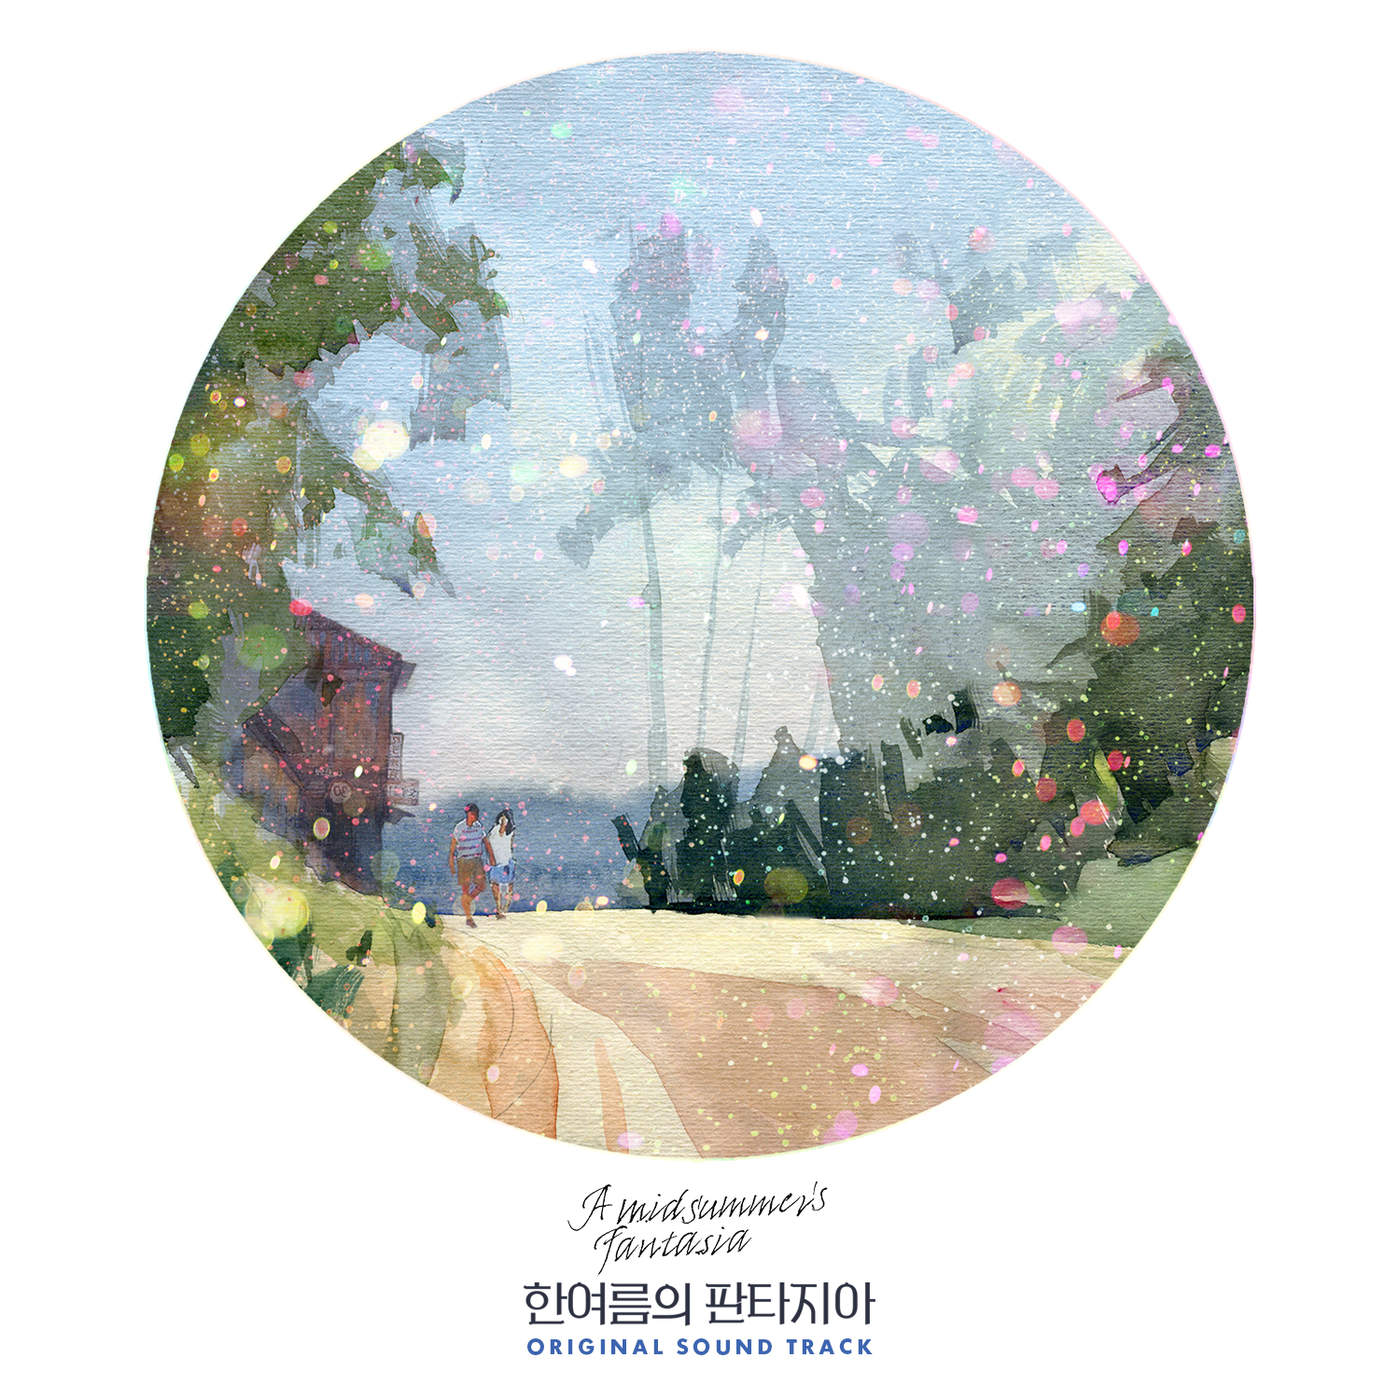 Minwhee Lee – A Midsummer's Fantasia – Single